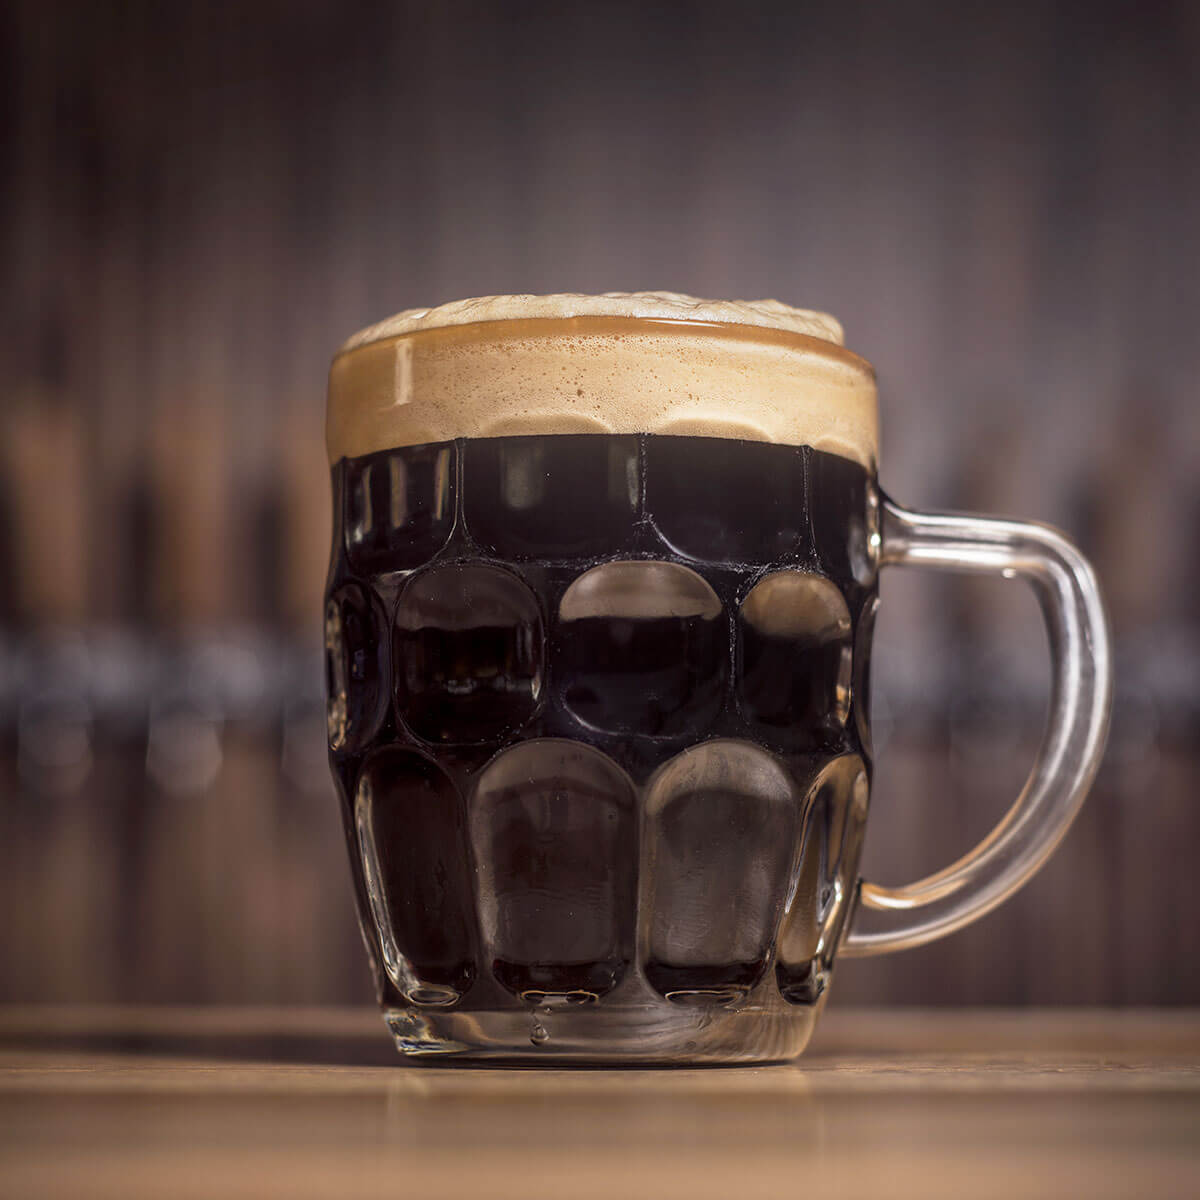 An English Porter in a Dimpled Beer Mug